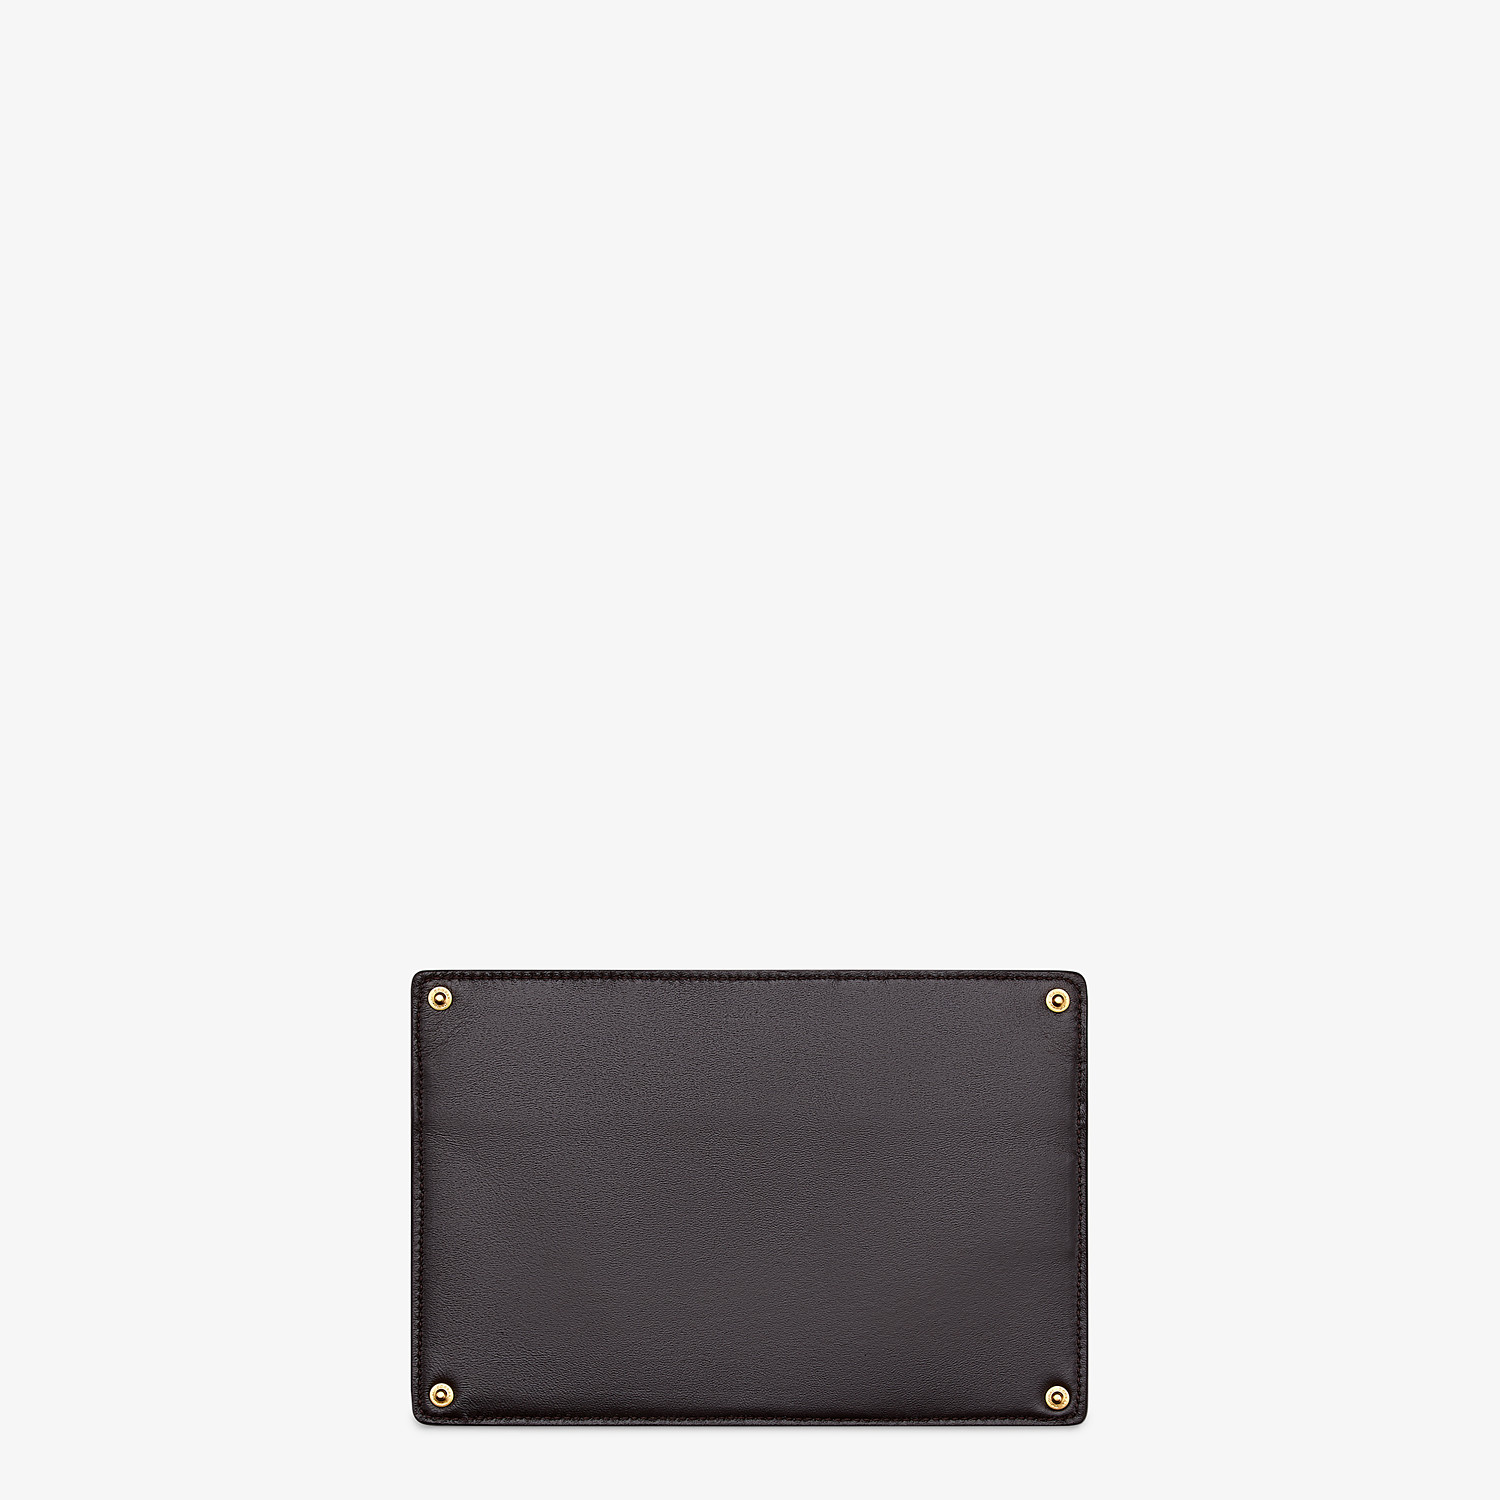 FENDI PEEKABOO POCKET - Accessory pocket in green elaphe - view 2 detail